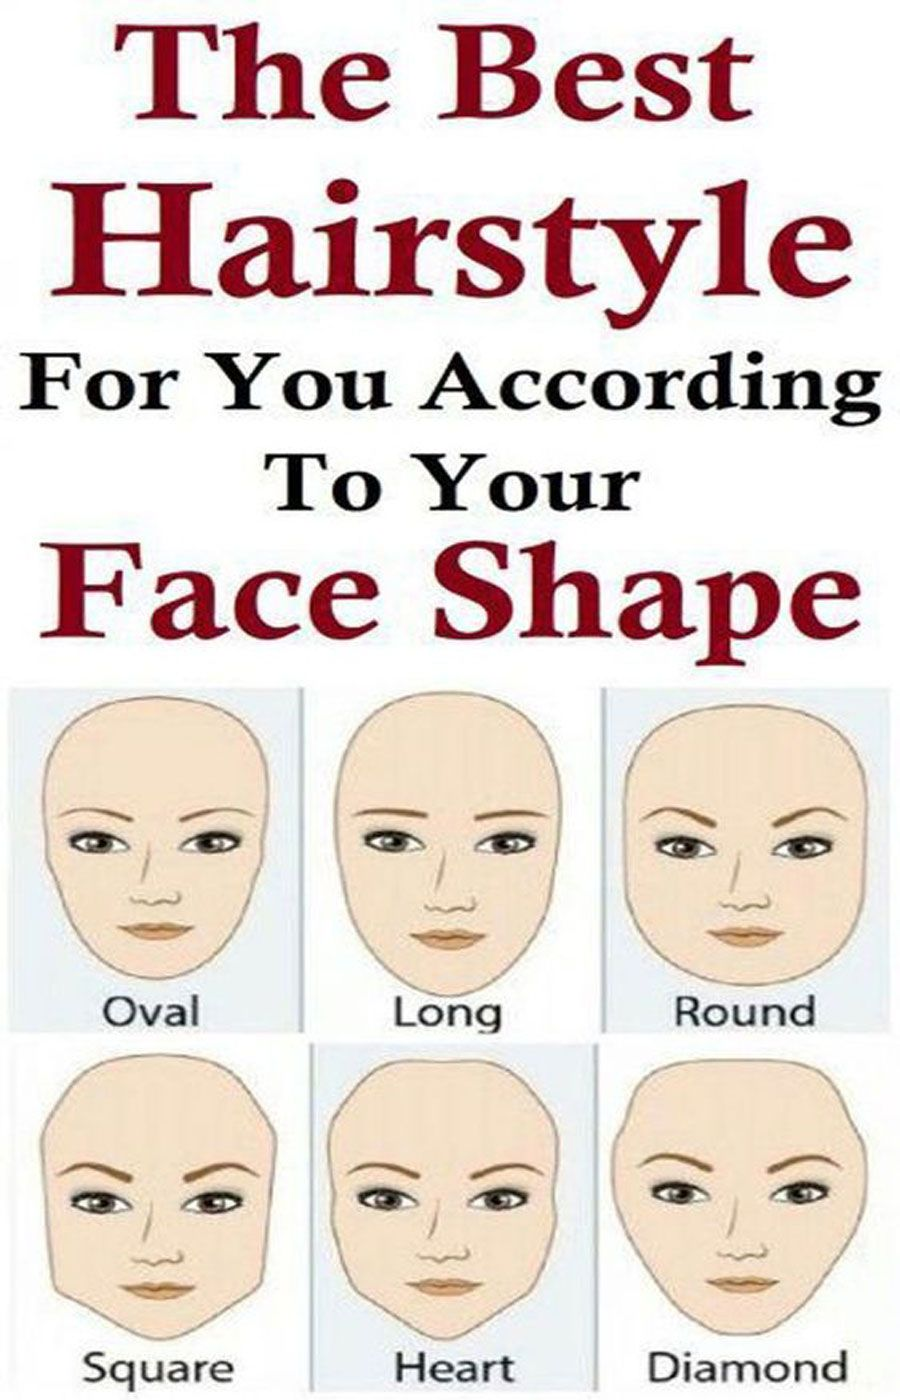 How To Find The Best Hairstyle For Your Face Shape In 2020 Long Face Shapes Face Shape Hairstyles Haircut For Face Shape